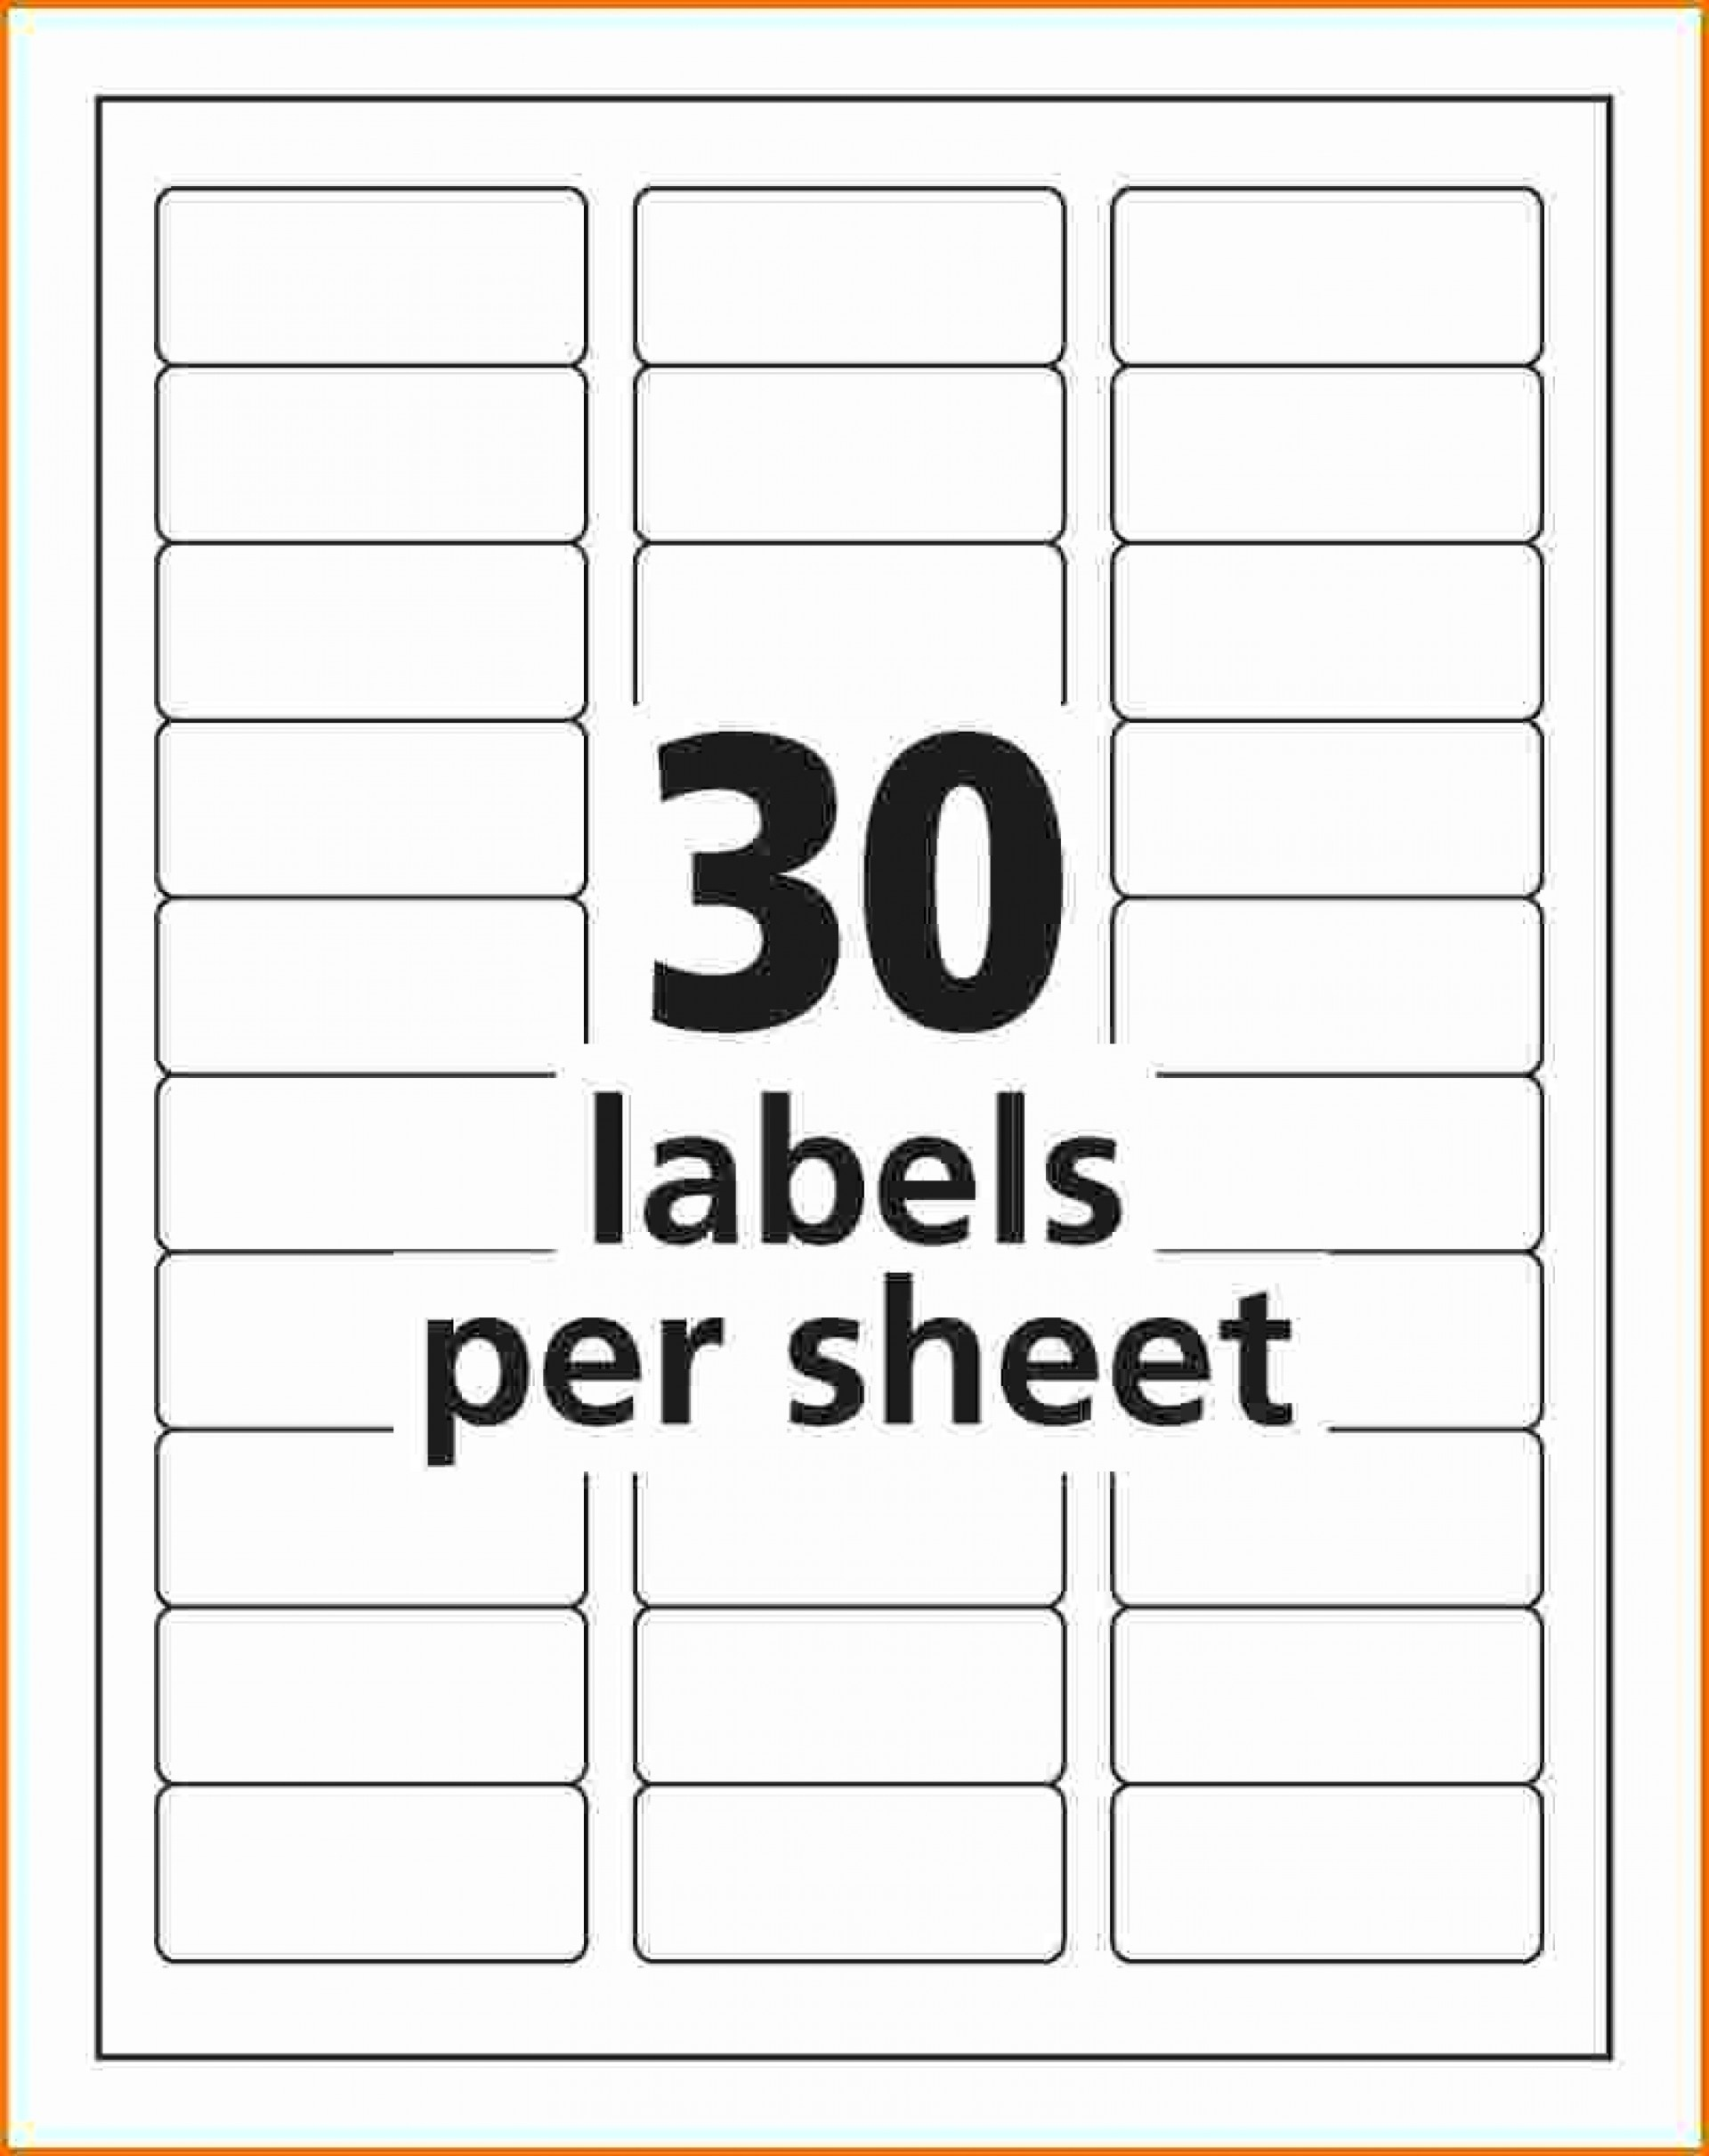 002 Template Ideas Free Printable Address Label Templates Imposing - Free Printable Address Label Templates